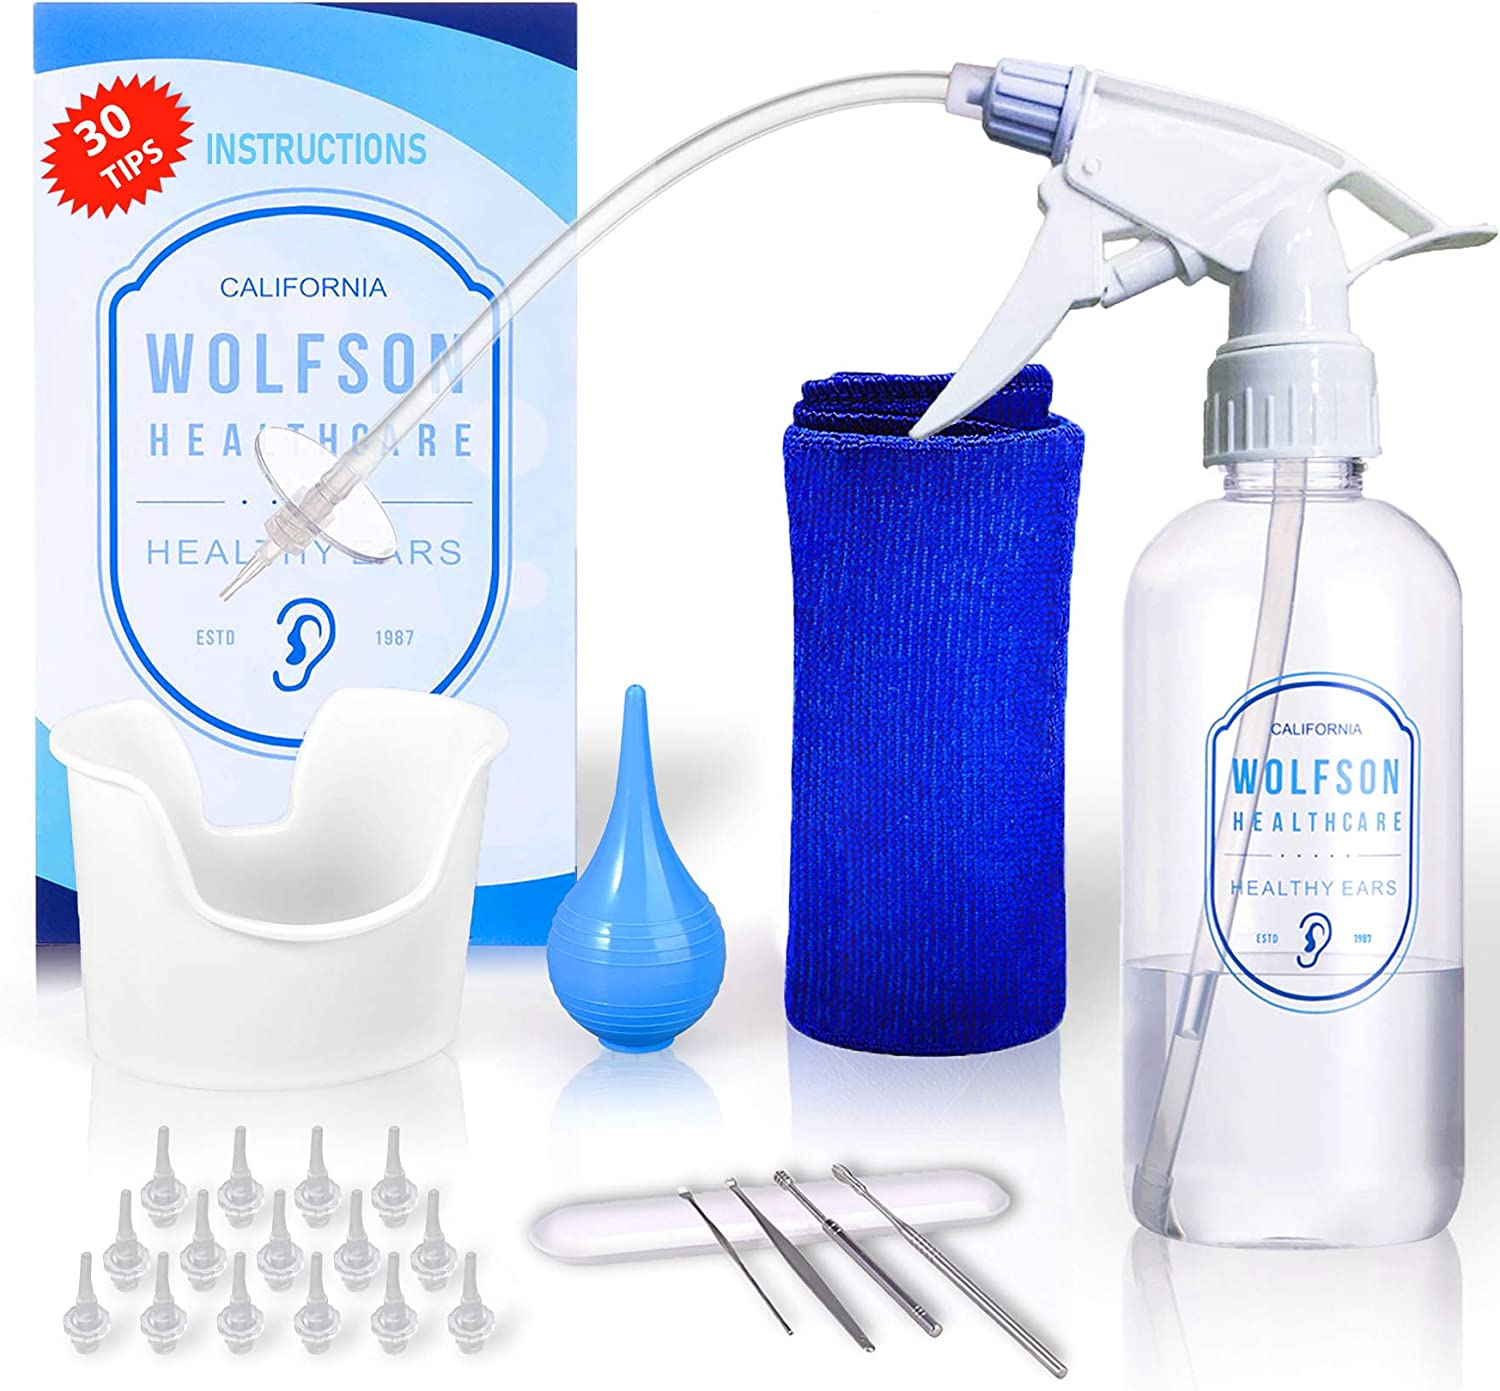 HCI7290 - OtoClear Spray Wash Kit: Health & Personal Care